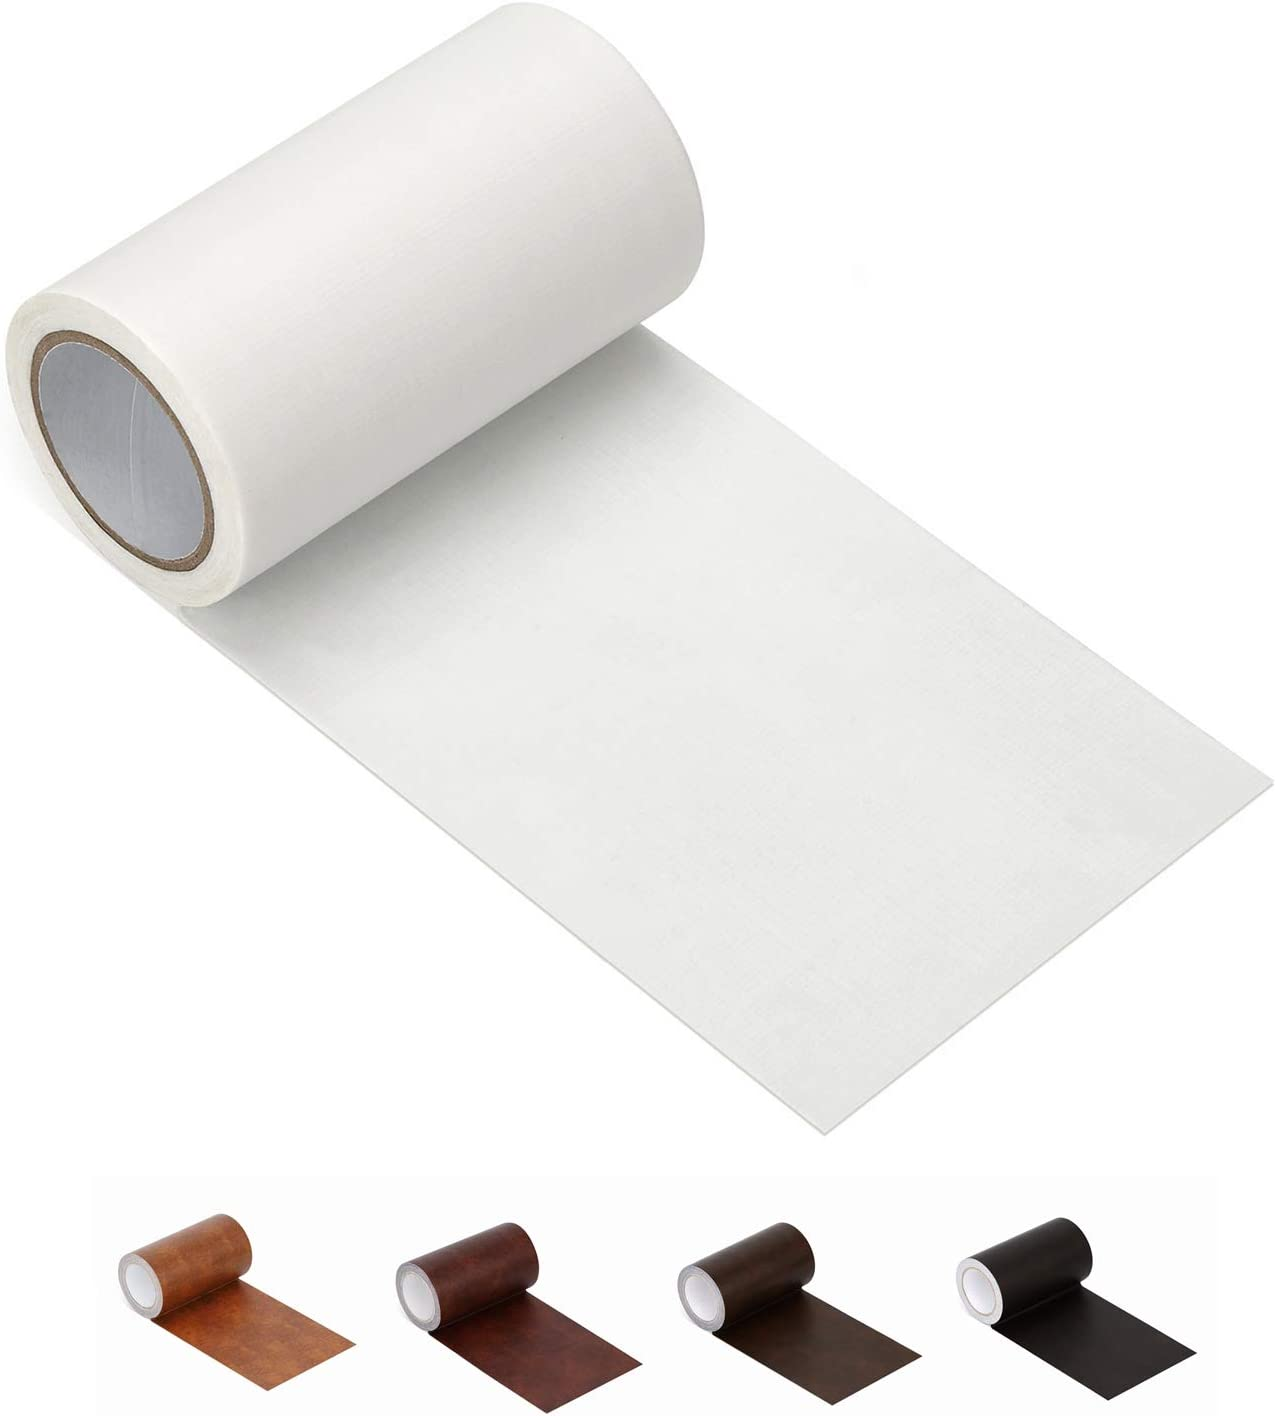 """Leather Repair Tape Patch Leather Adhesive for Sofas, Car Seats, Handbags, Jackets,First Aid Patch 2.4""""X15' (White)"""